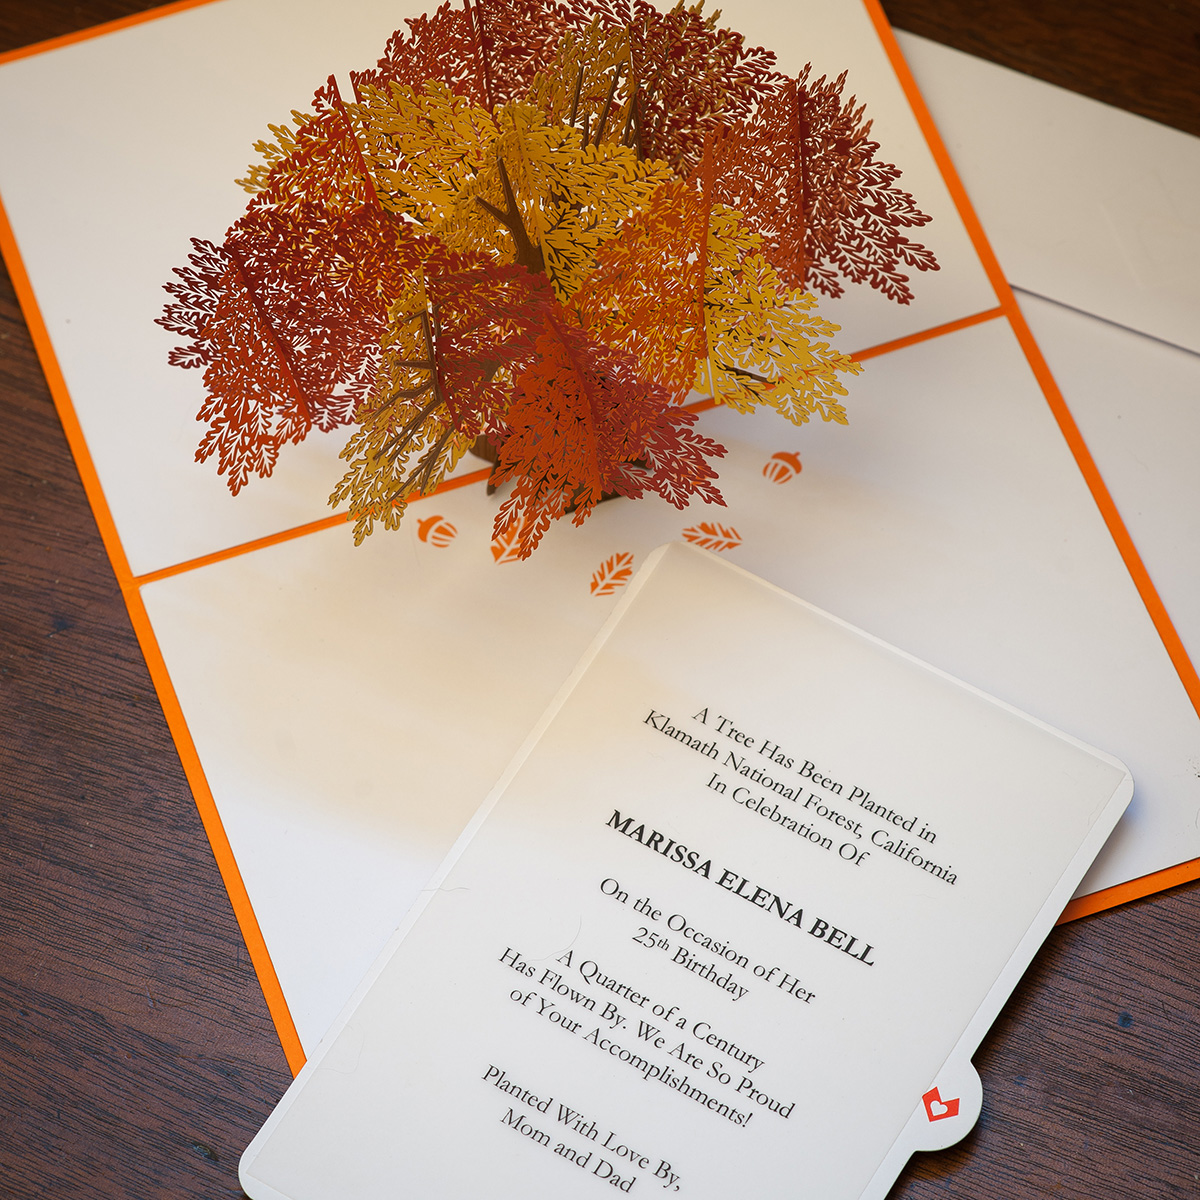 3-D Pop-Up Card tree planting certificate